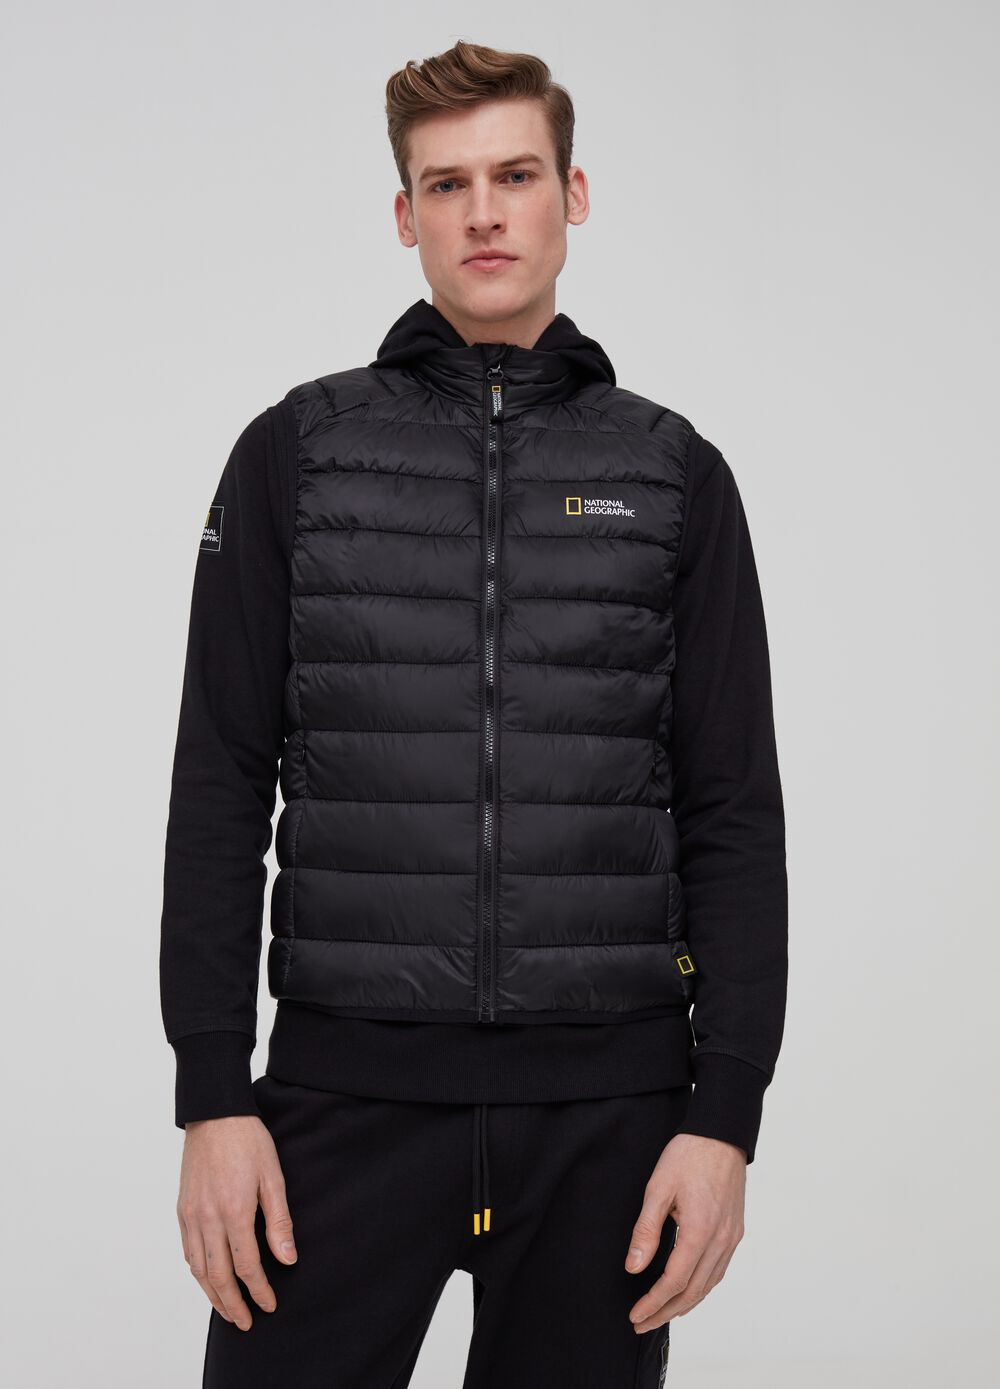 Padded National Geographic gilet